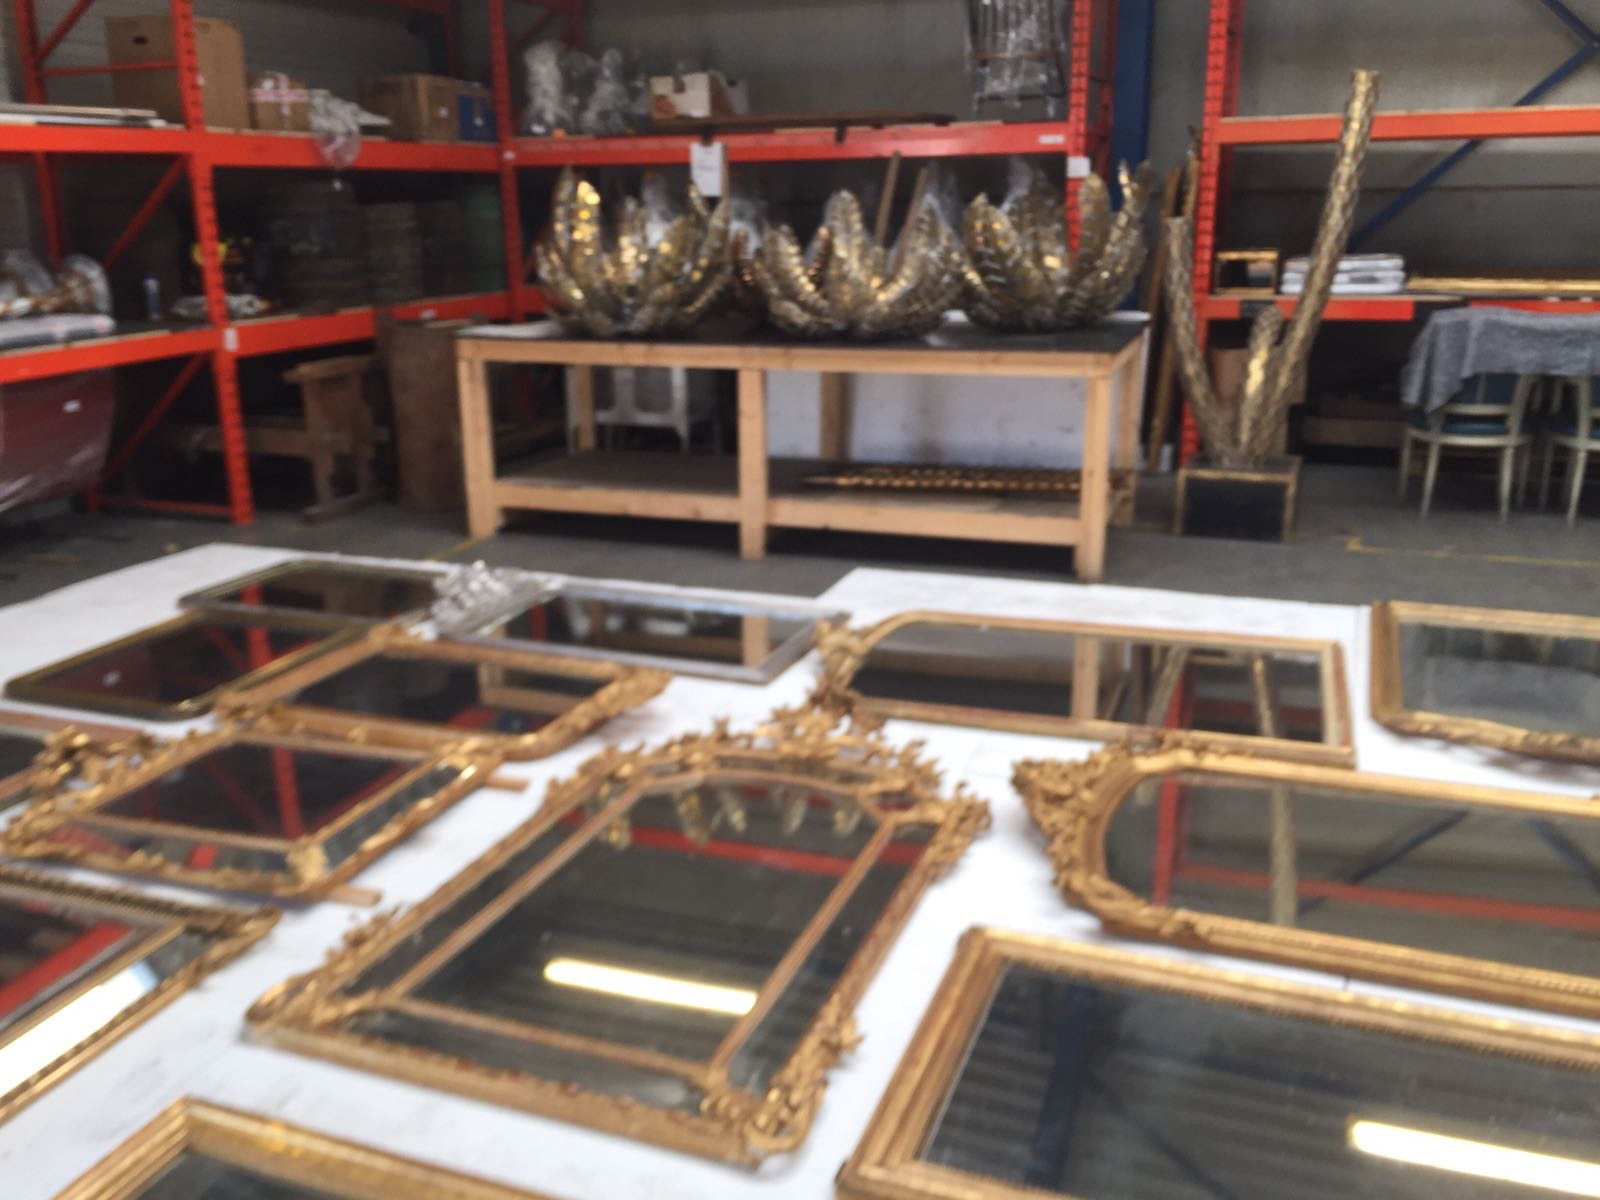 AD&CO Logistics provides international art and antiques shipping for single items, half load or full load shipments